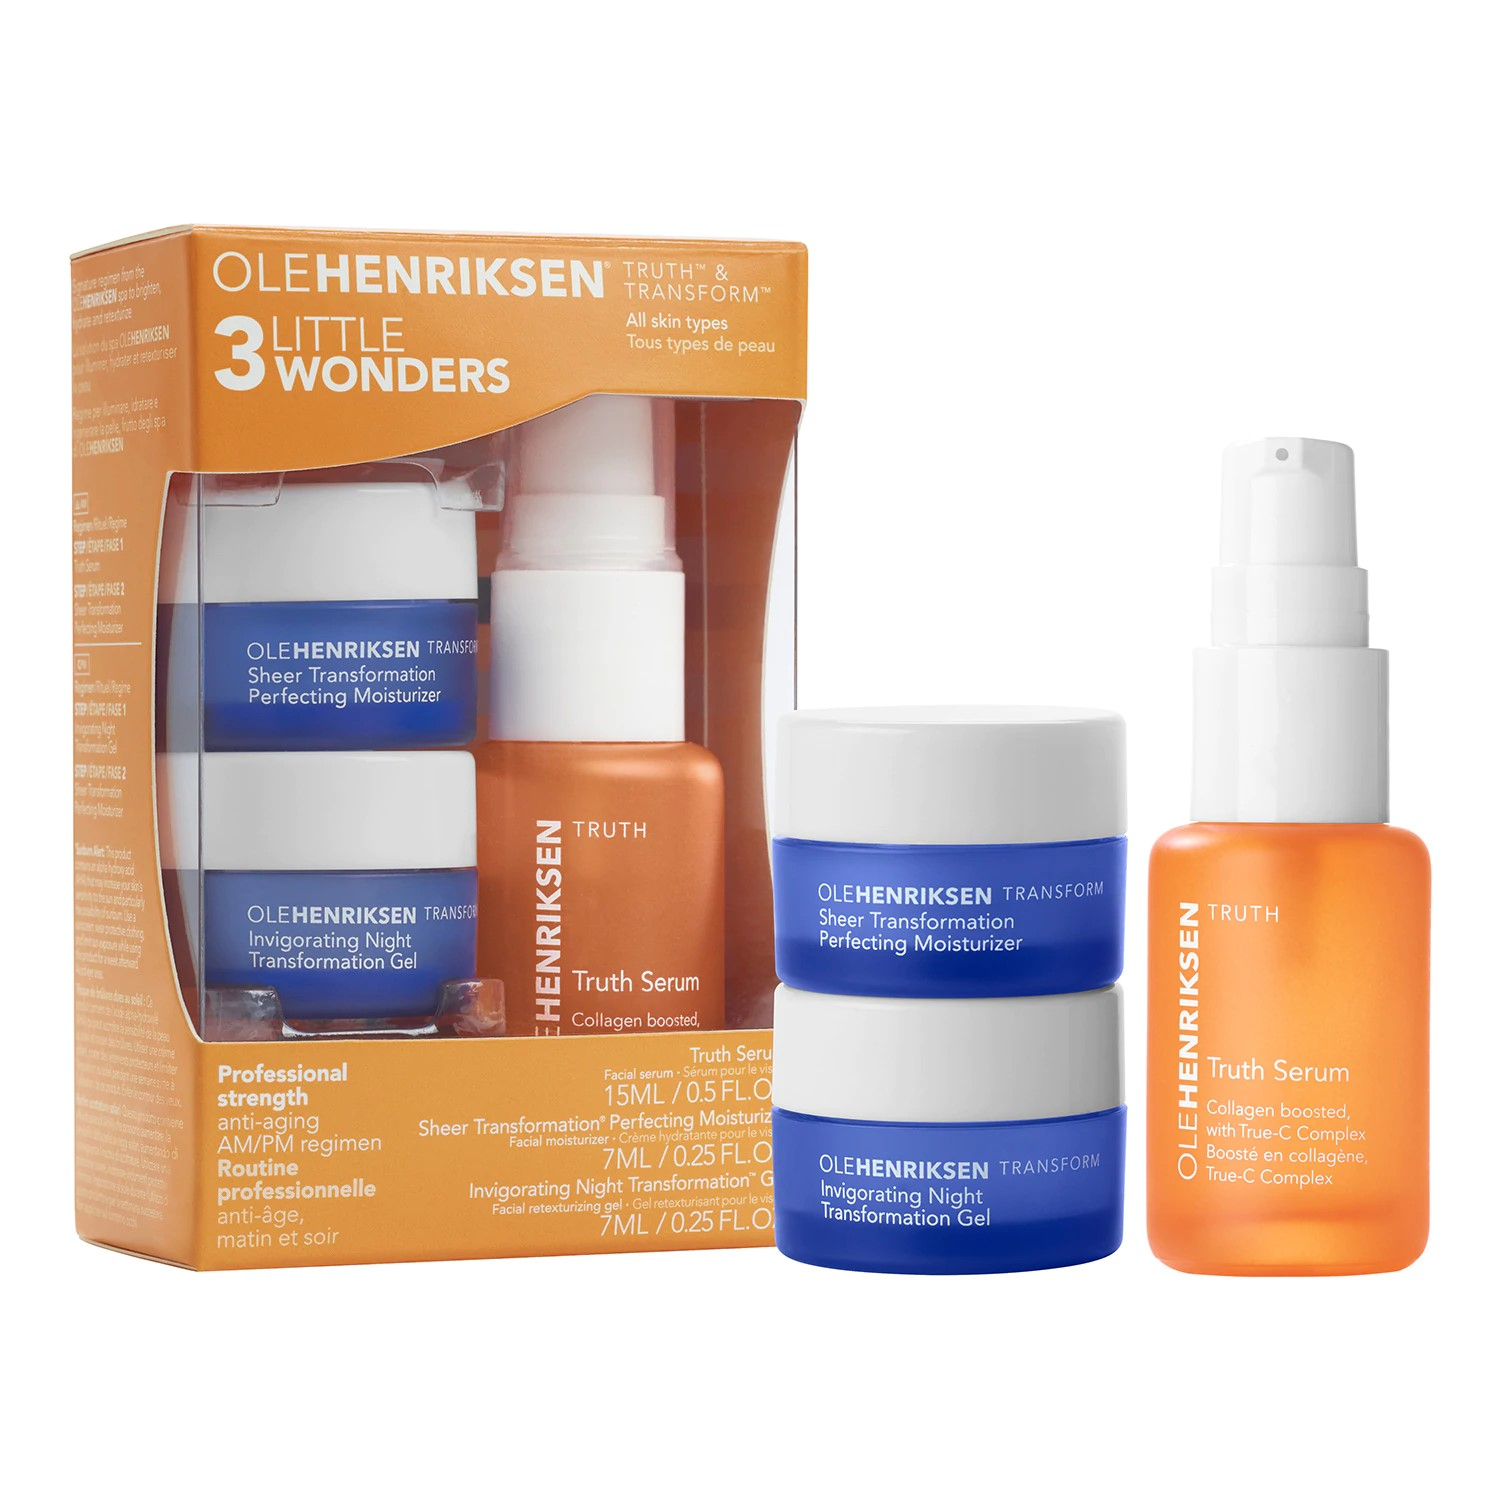 3 Little Wonders Mini Mini Age-Skincare Set de  Olehenriksen